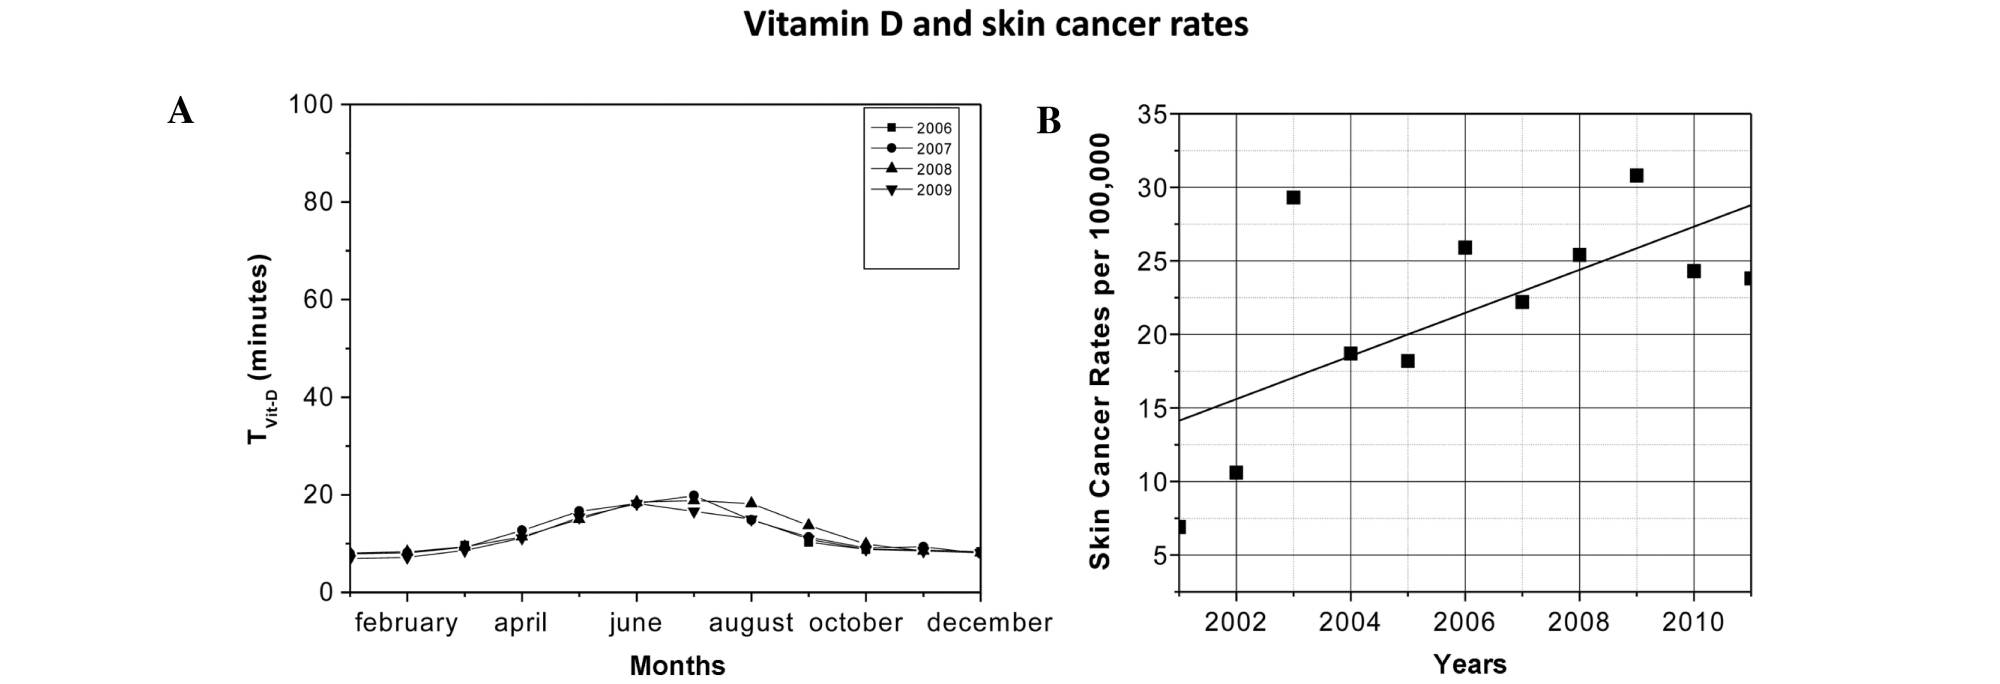 hight resolution of  were exposed to direct ultraviolet sunlight 10 total body surface area b skin cancer rates per 100 000 individuals in arica between 2001 and 2011